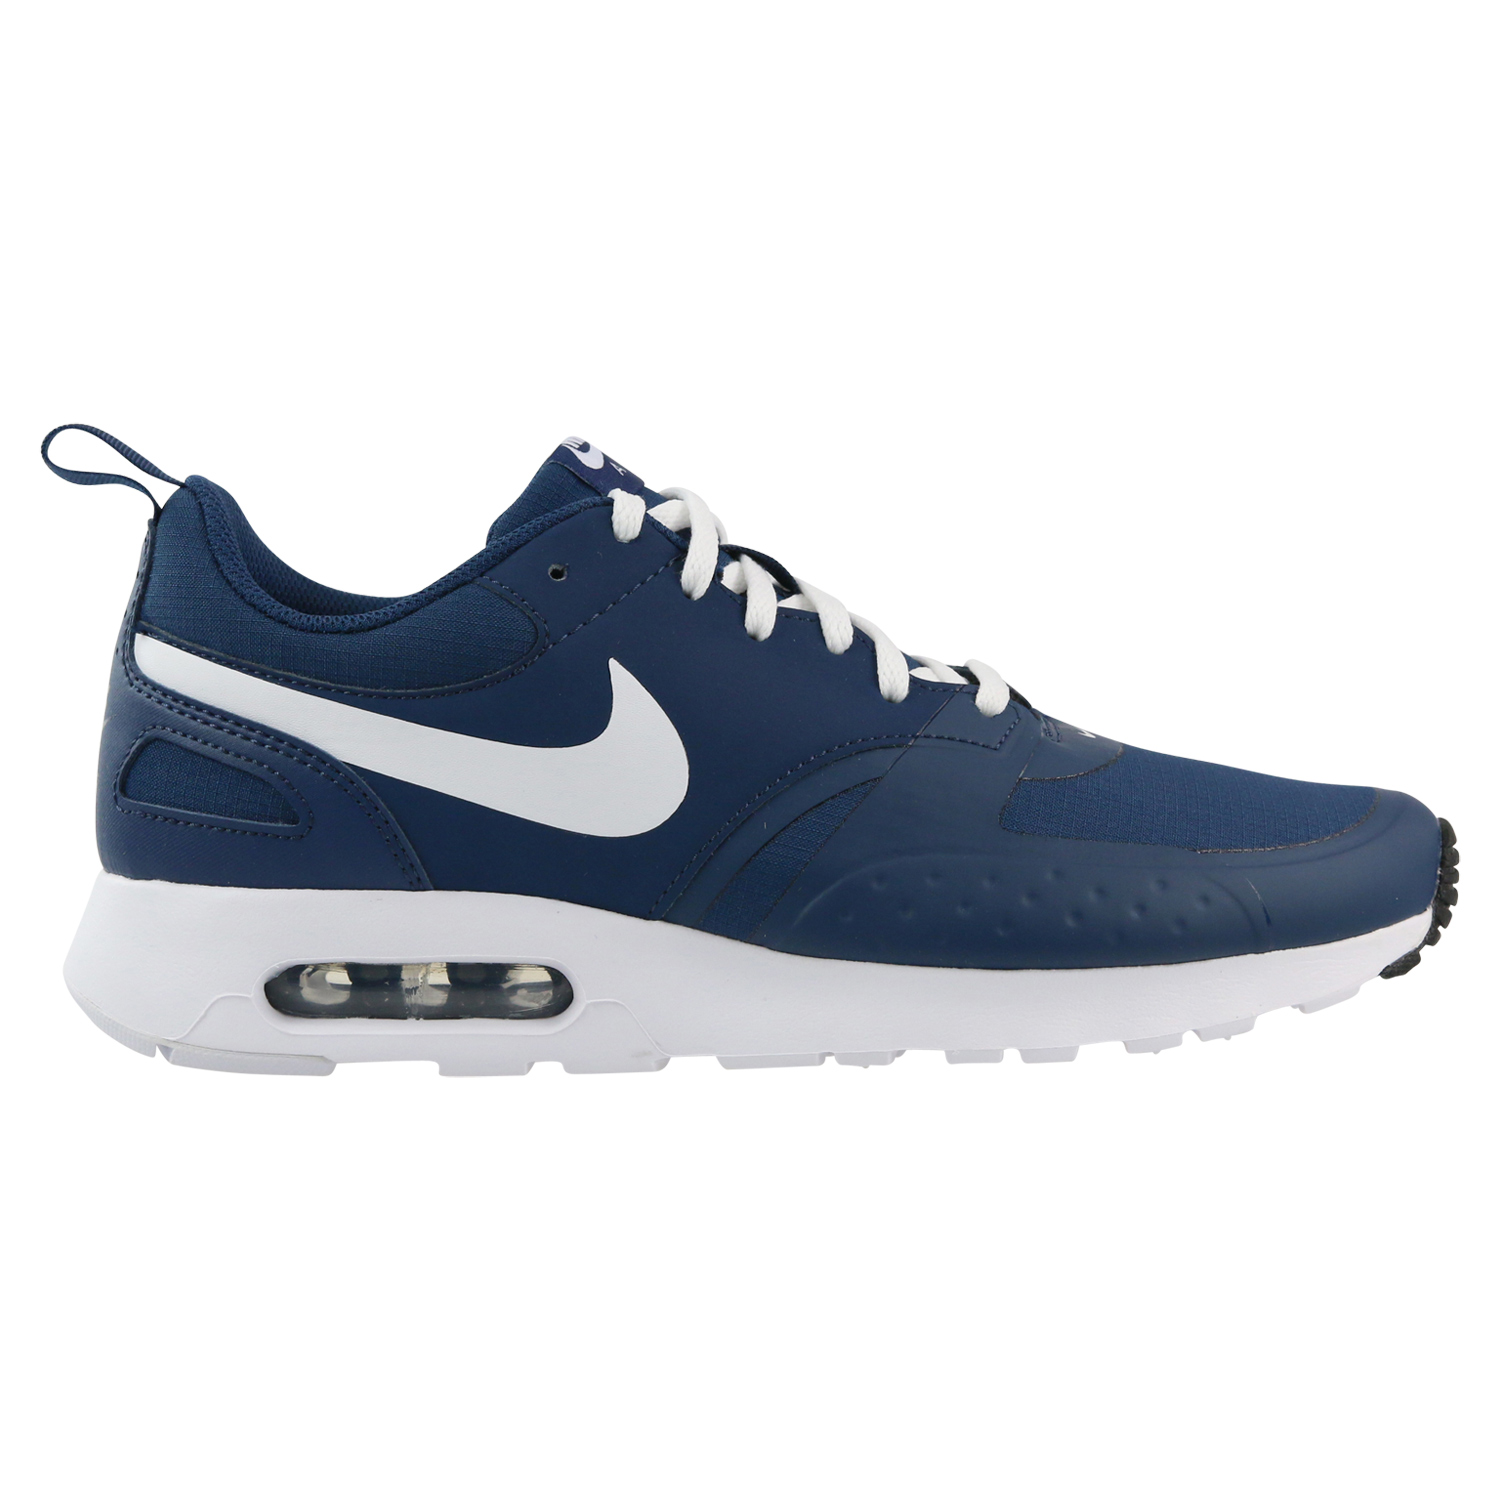 50% off new cheap outlet store sale NIKE AIR MAX Vision Schuhe Sneaker Herren Dunkelblau 918230 ...